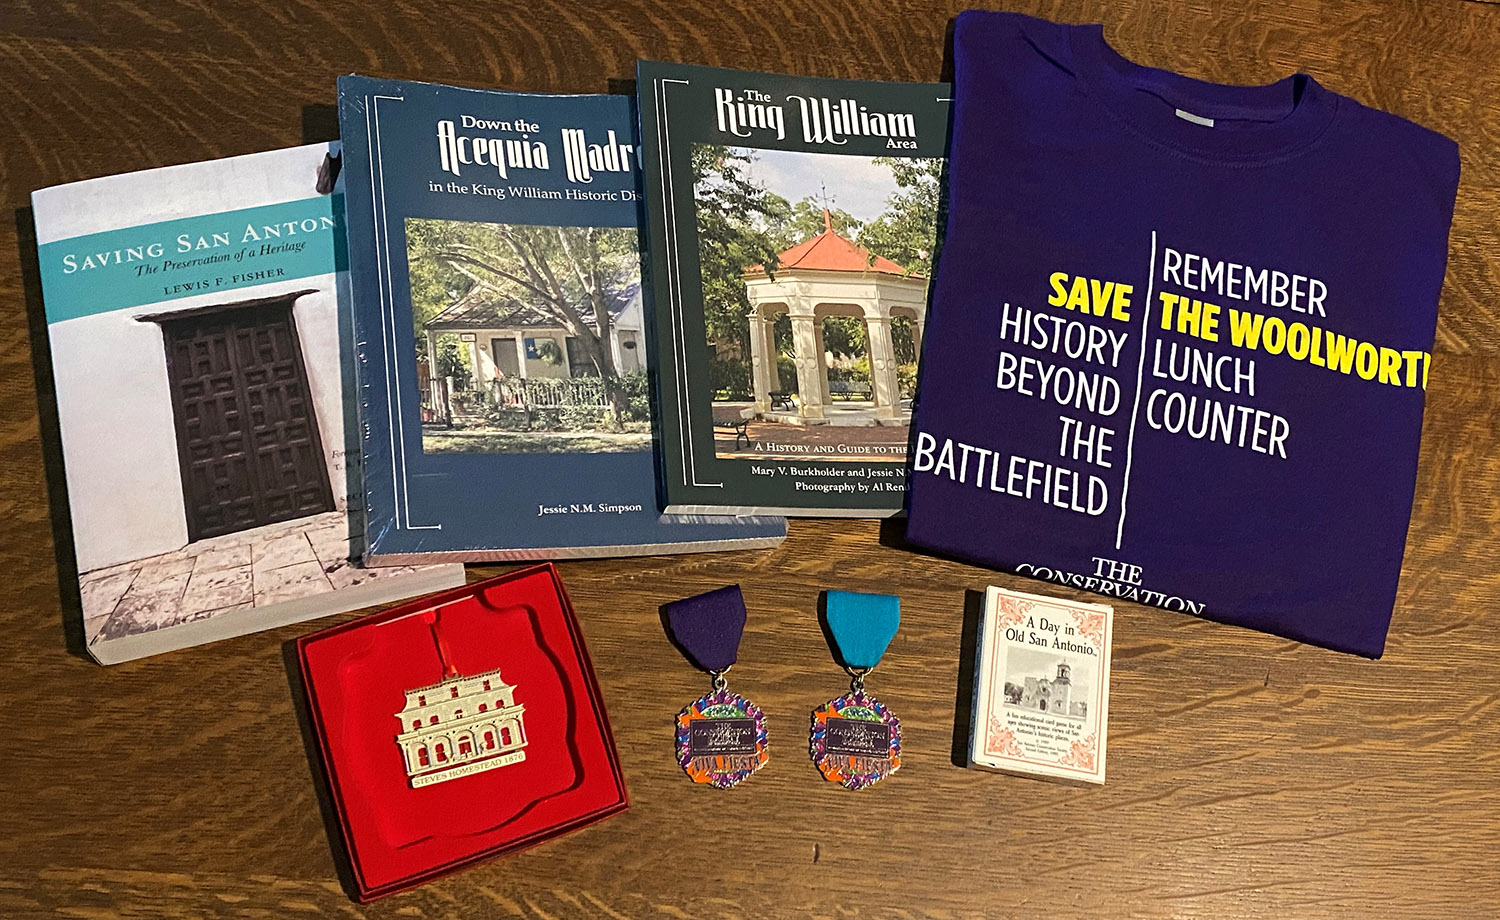 Books, Medals and More